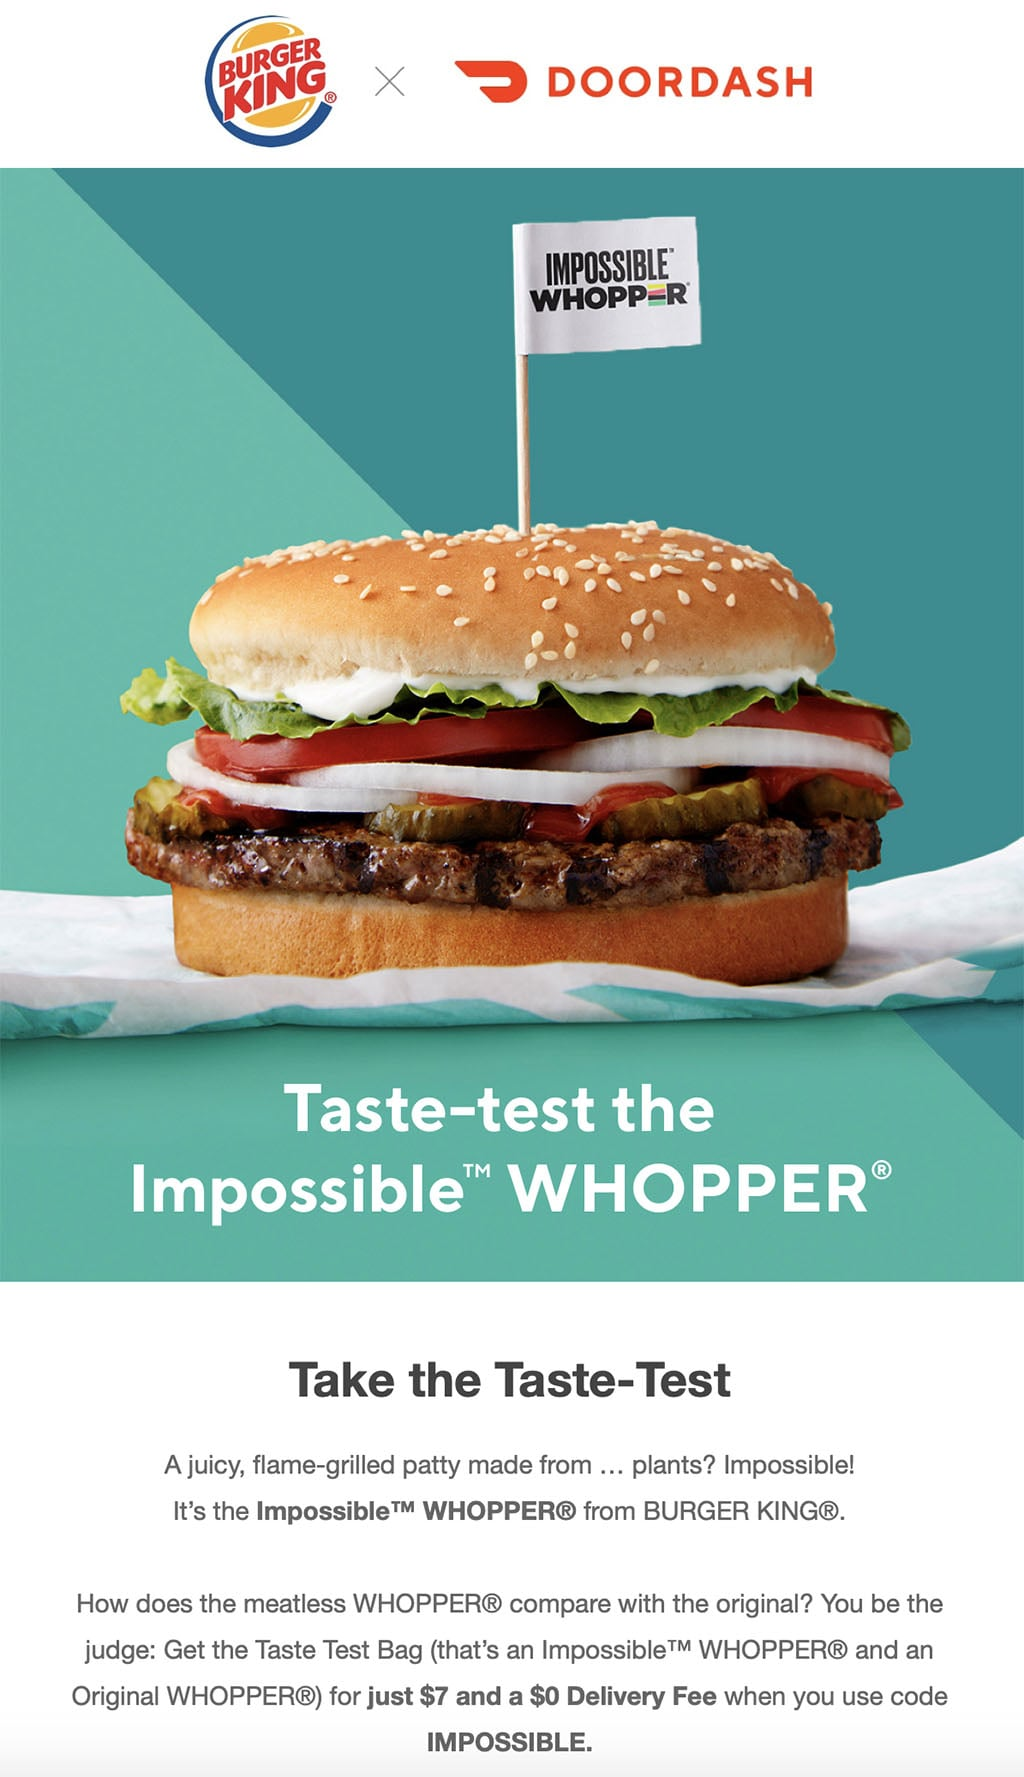 Impossible taste test (DoorDash)